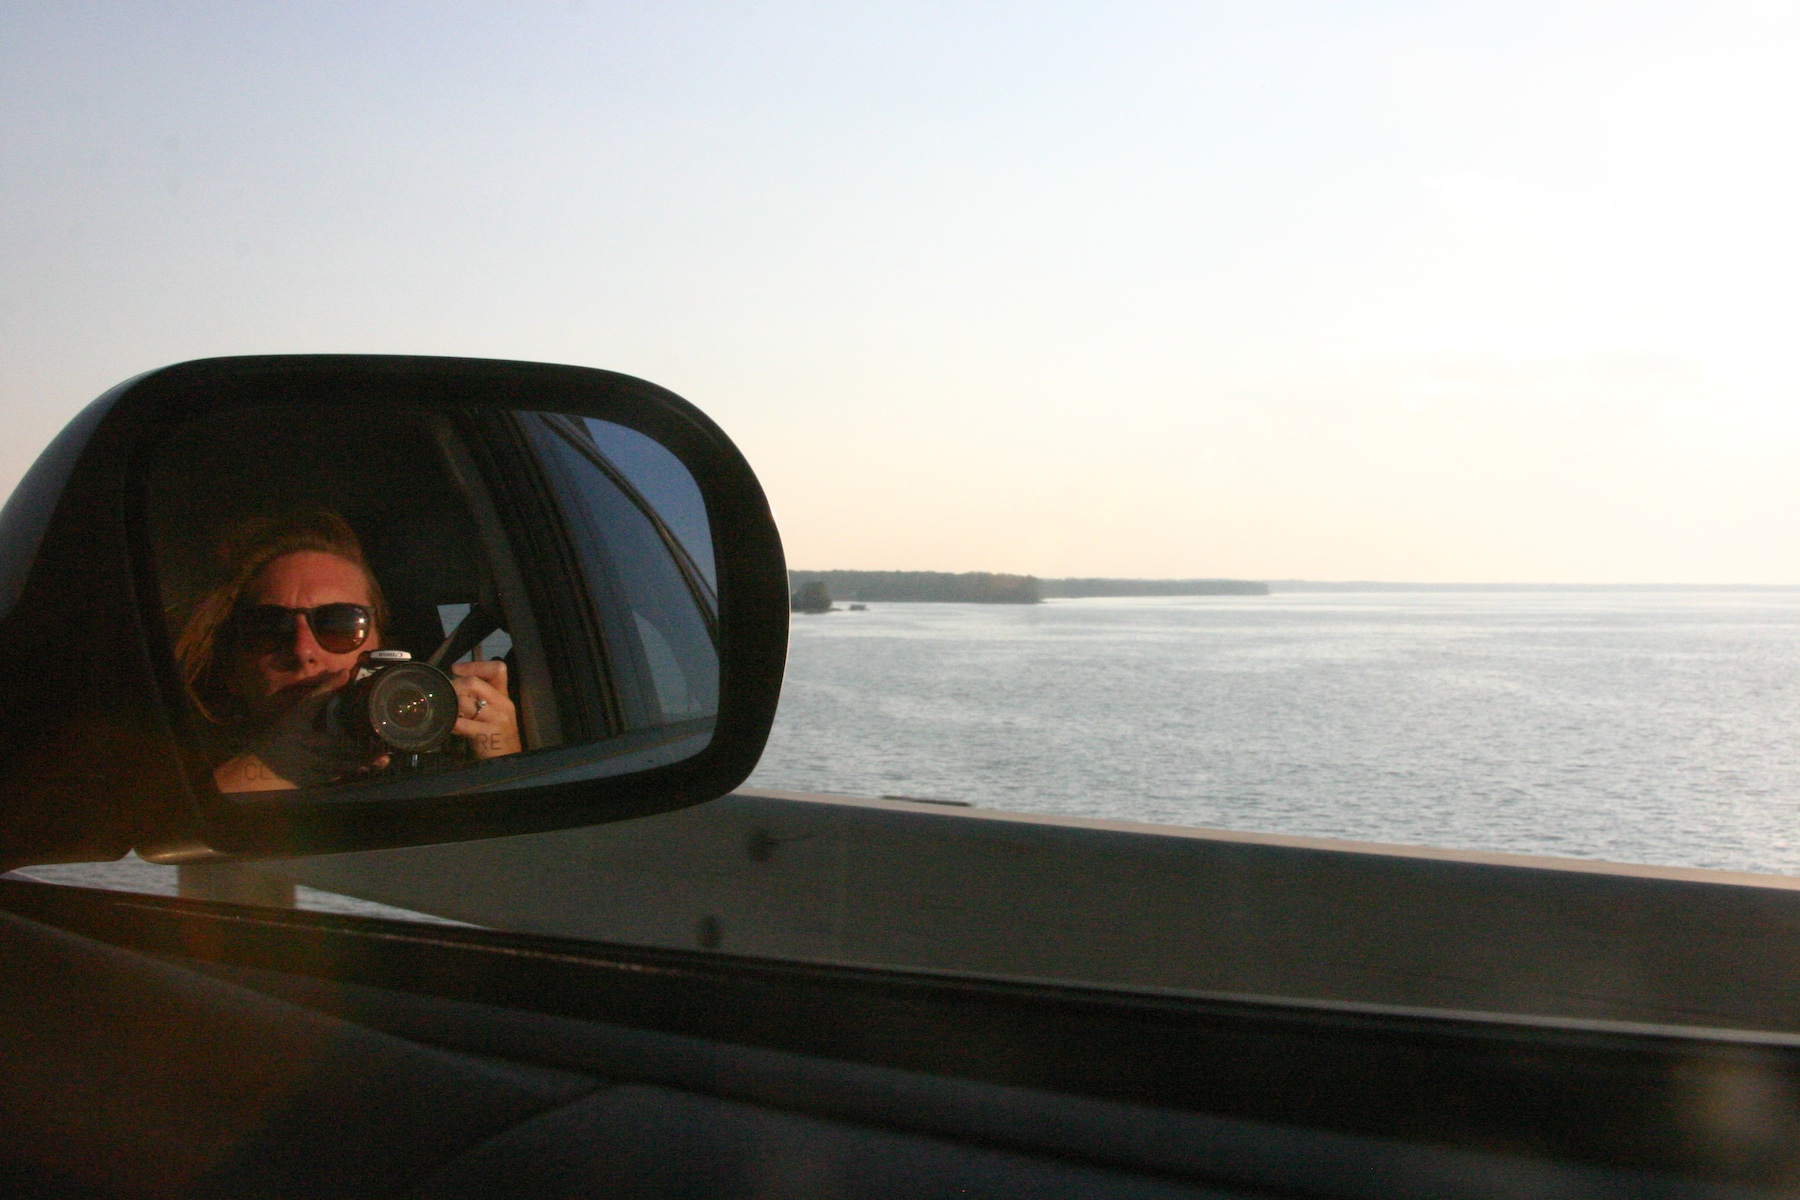 Chesapeake Bay road trip